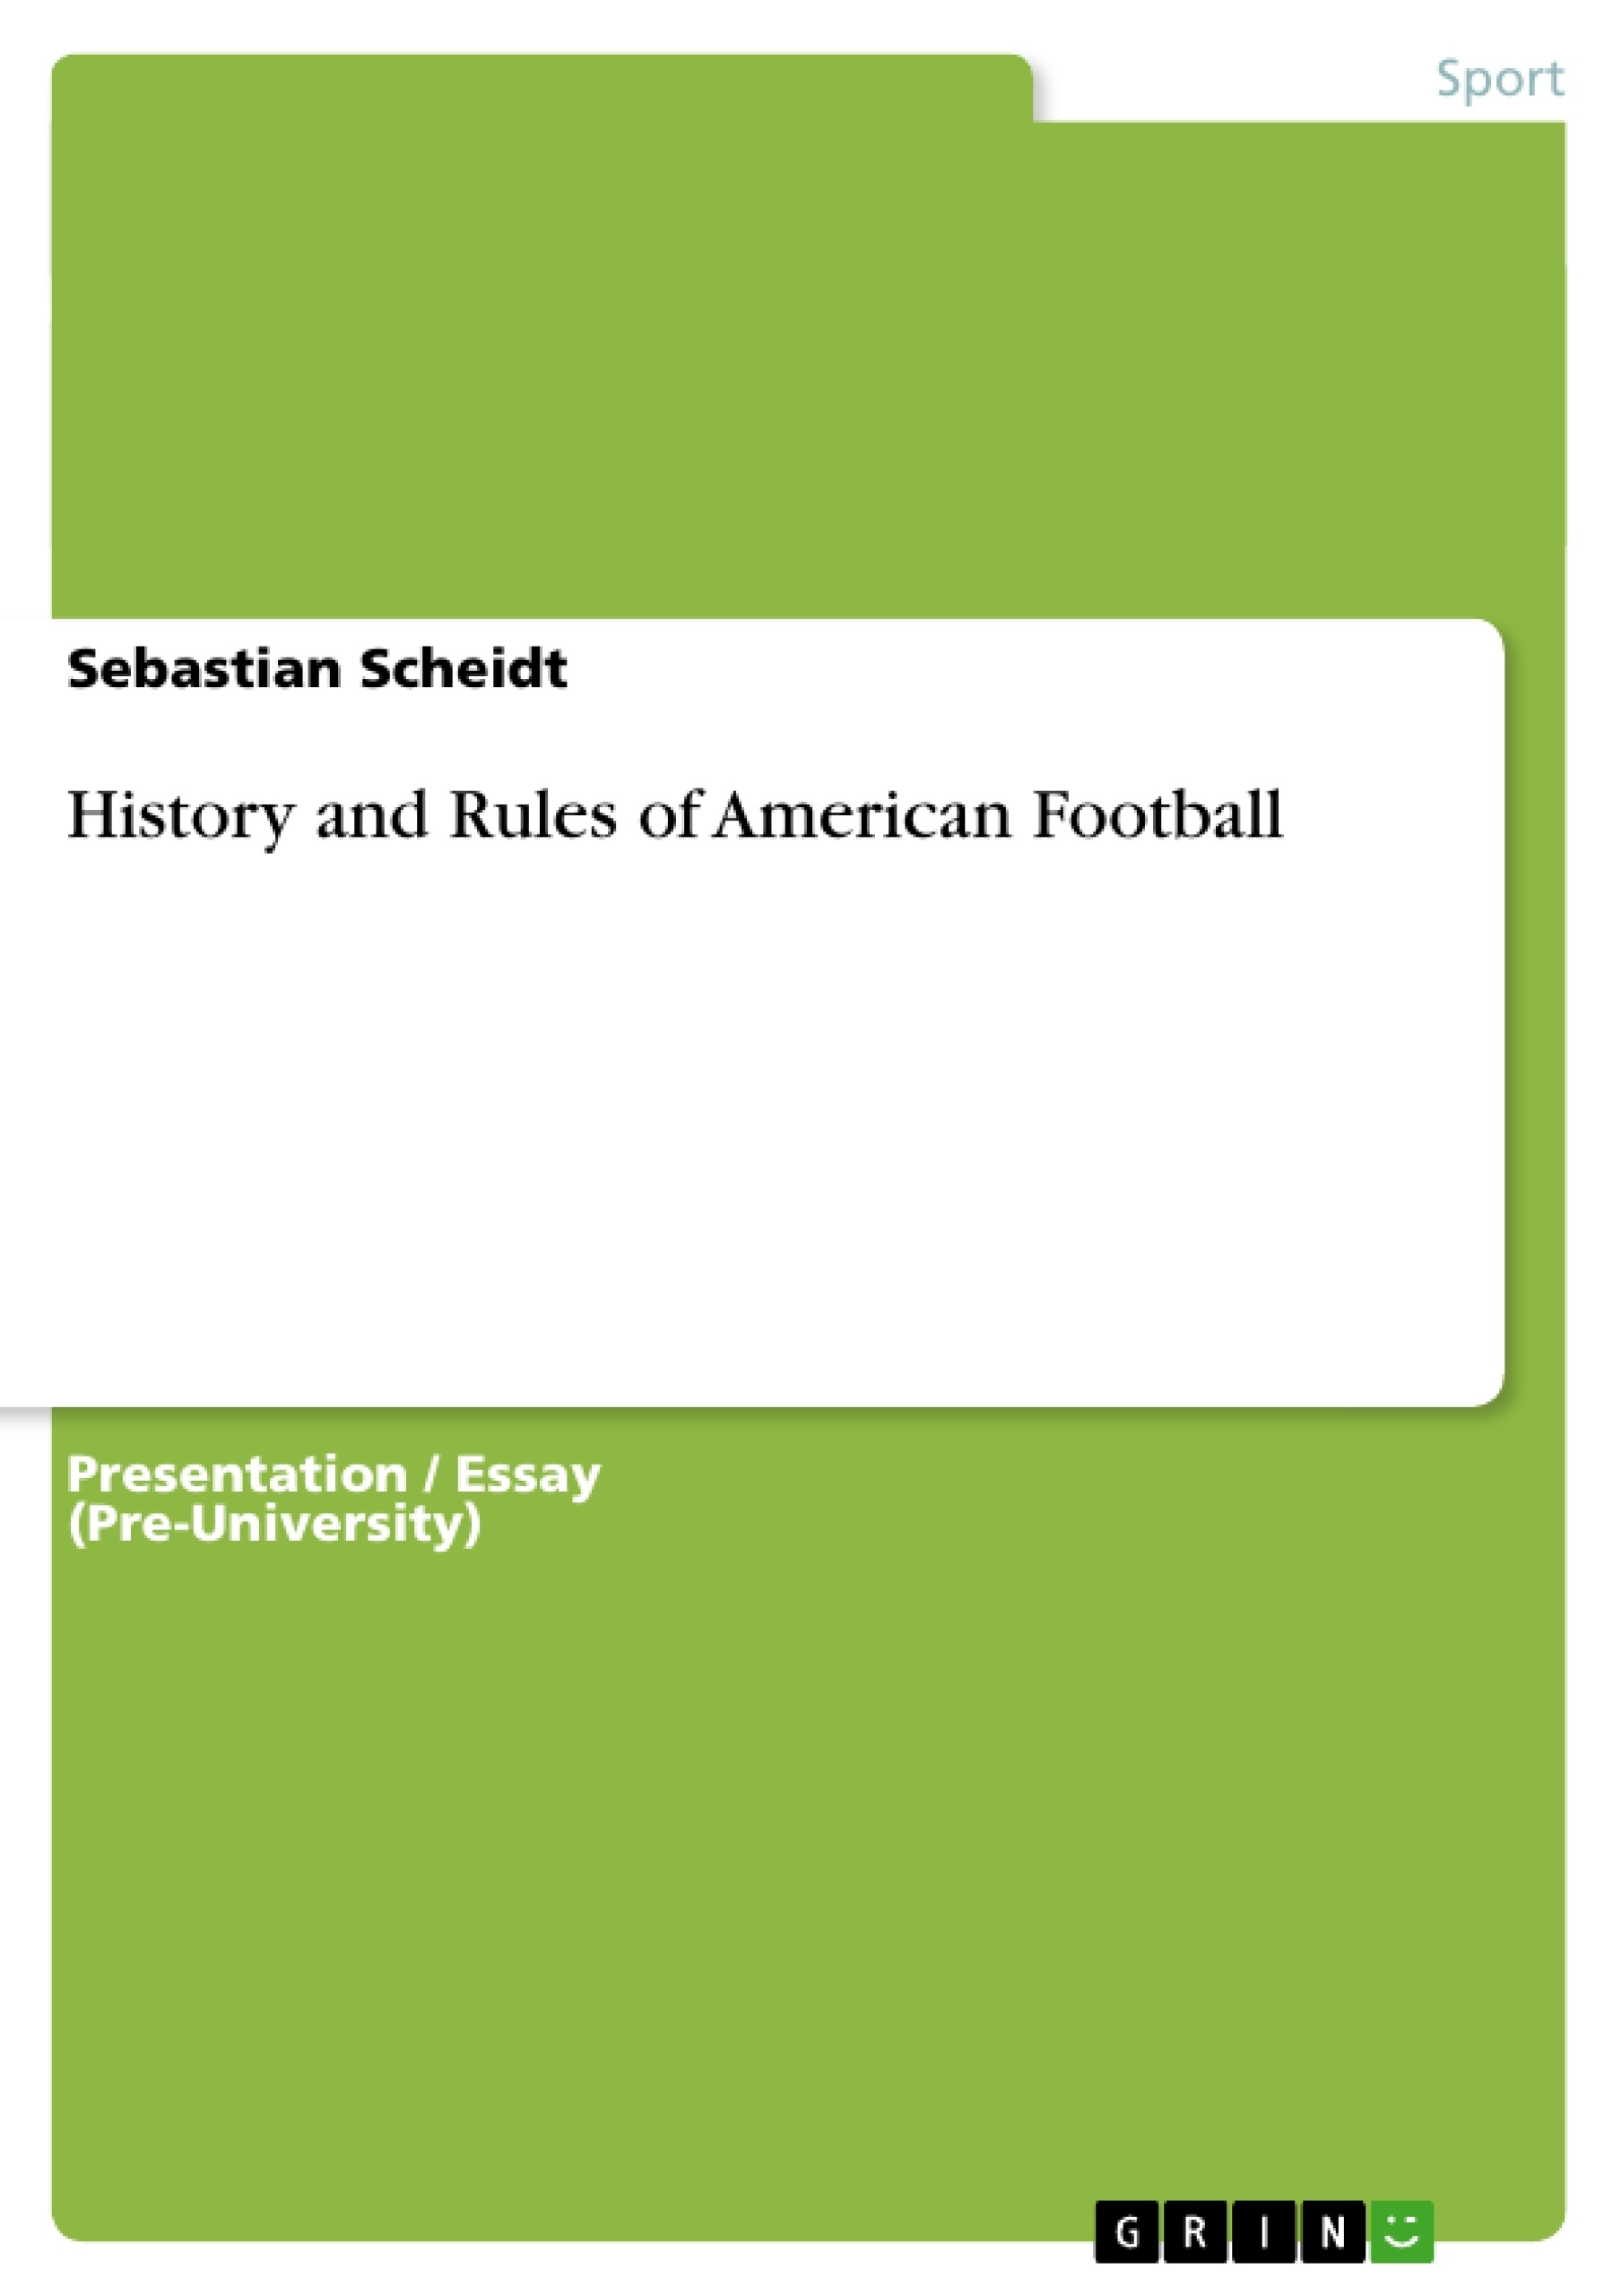 Title: History and Rules of American Football